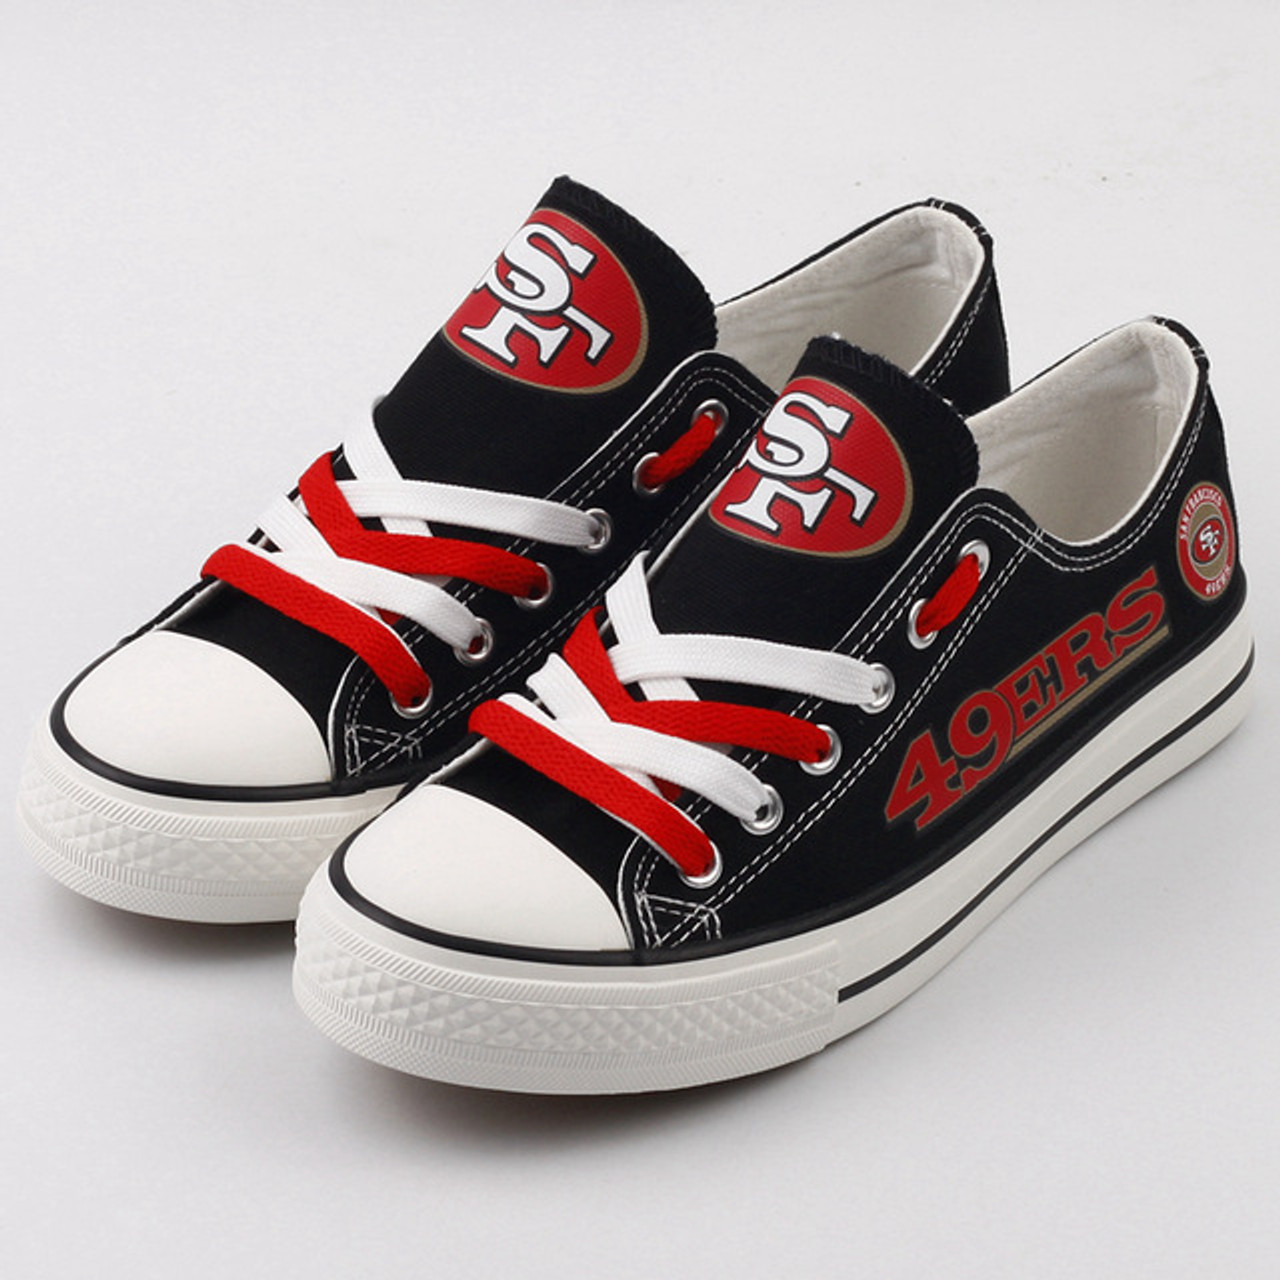 7cece741 **(NEW-OFFICIALLY-LICENSED-N.F.L.SAN-FRANCISCO-49ERS-RUNNING-SHOES,MENS-OR-WOMENS-ROSHE-STYLE,LIGHT-WEIGHT-SPORT-PREMIUM-RUNNING-SHOES/WITH-OFFICIAL-4...